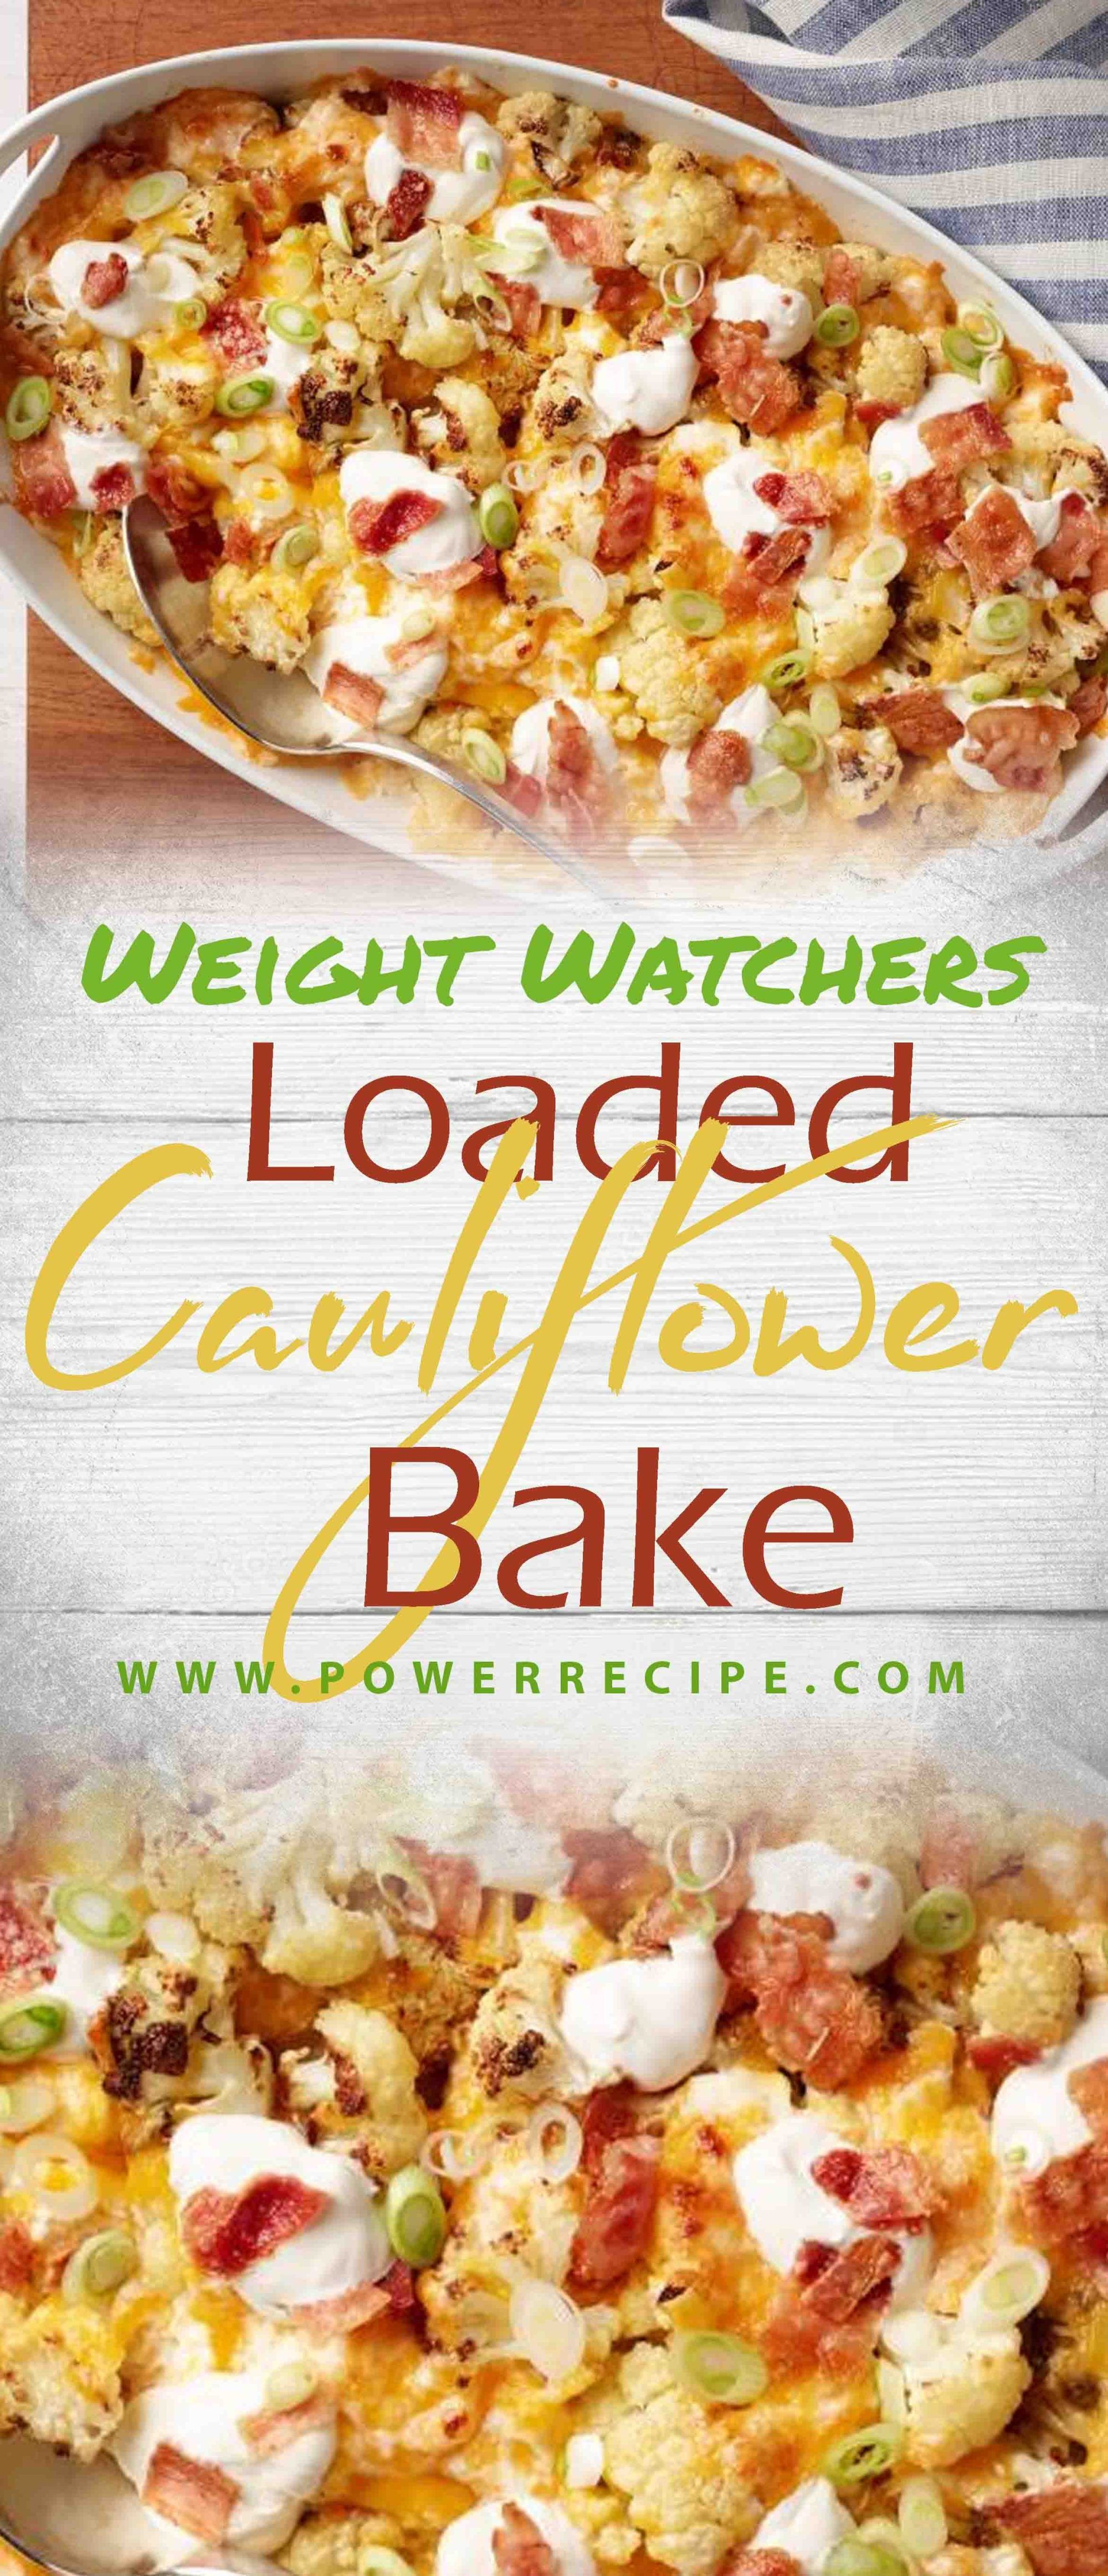 Loaded Cauliflower Bake – All about Your Power Recipes #loadedcauliflowerbake